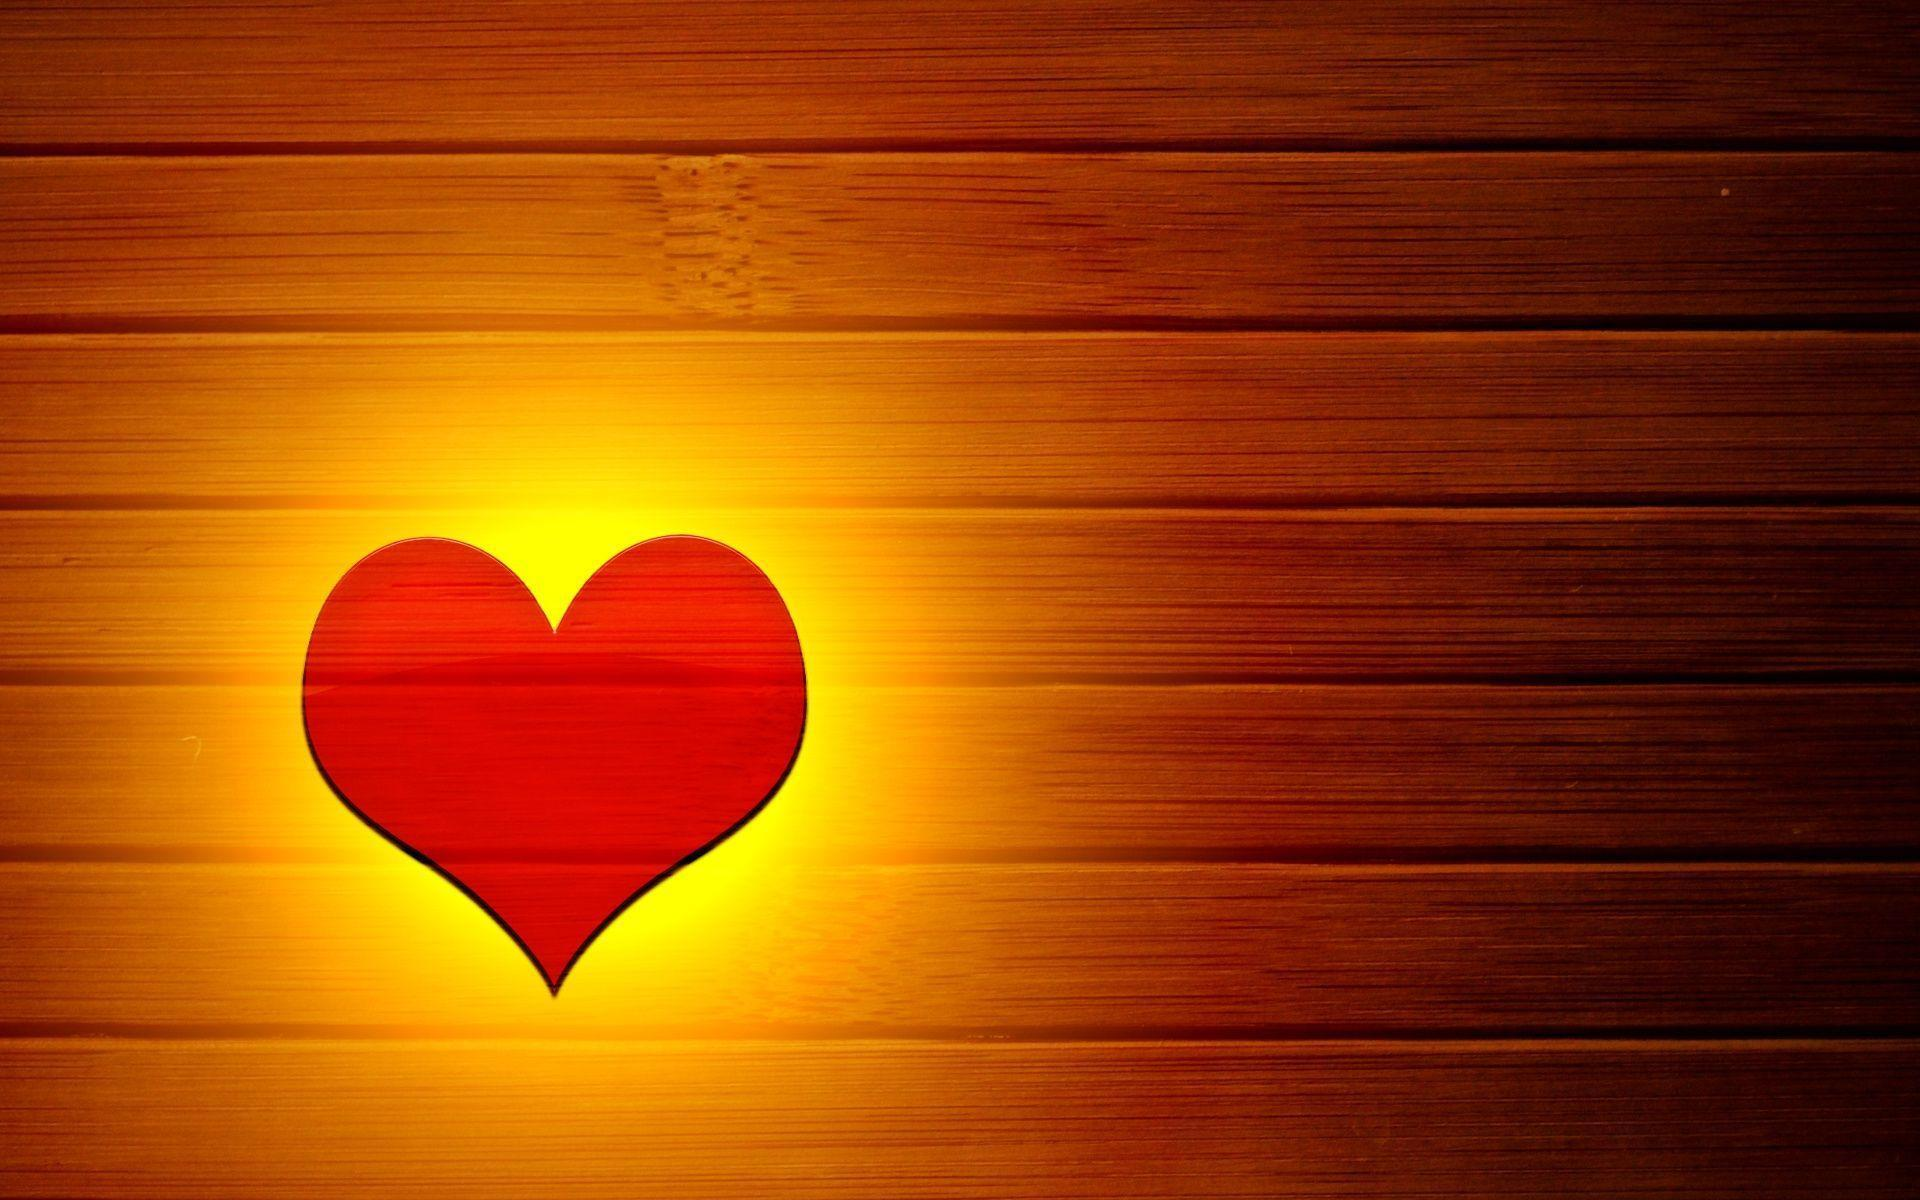 Wallpaper Images Of Love : Love Backgrounds Wallpapers - Wallpaper cave